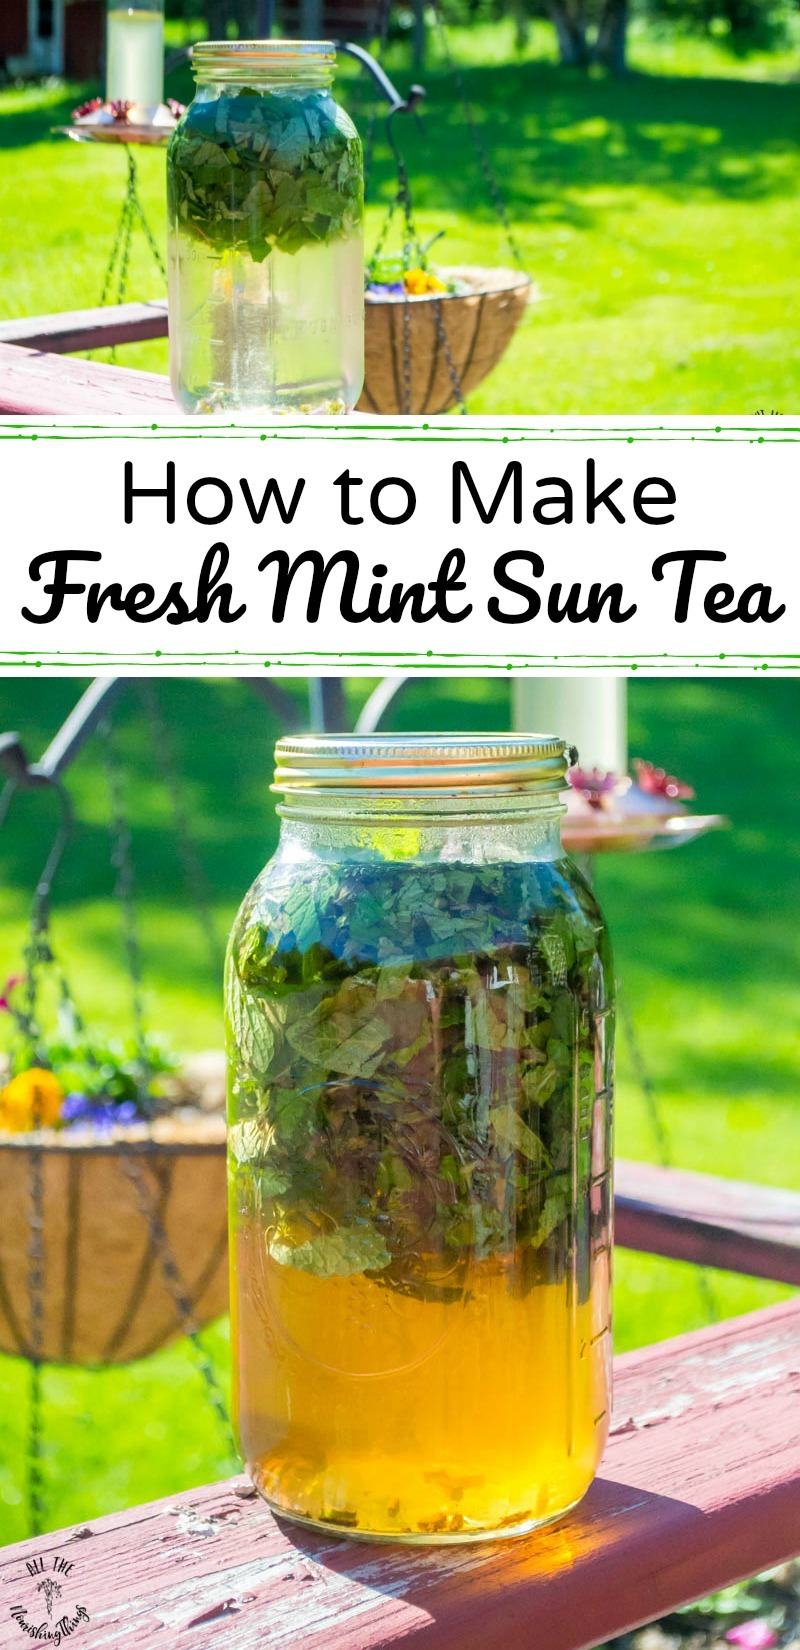 collage of 2 images of fresh mint sun tea with text overlay